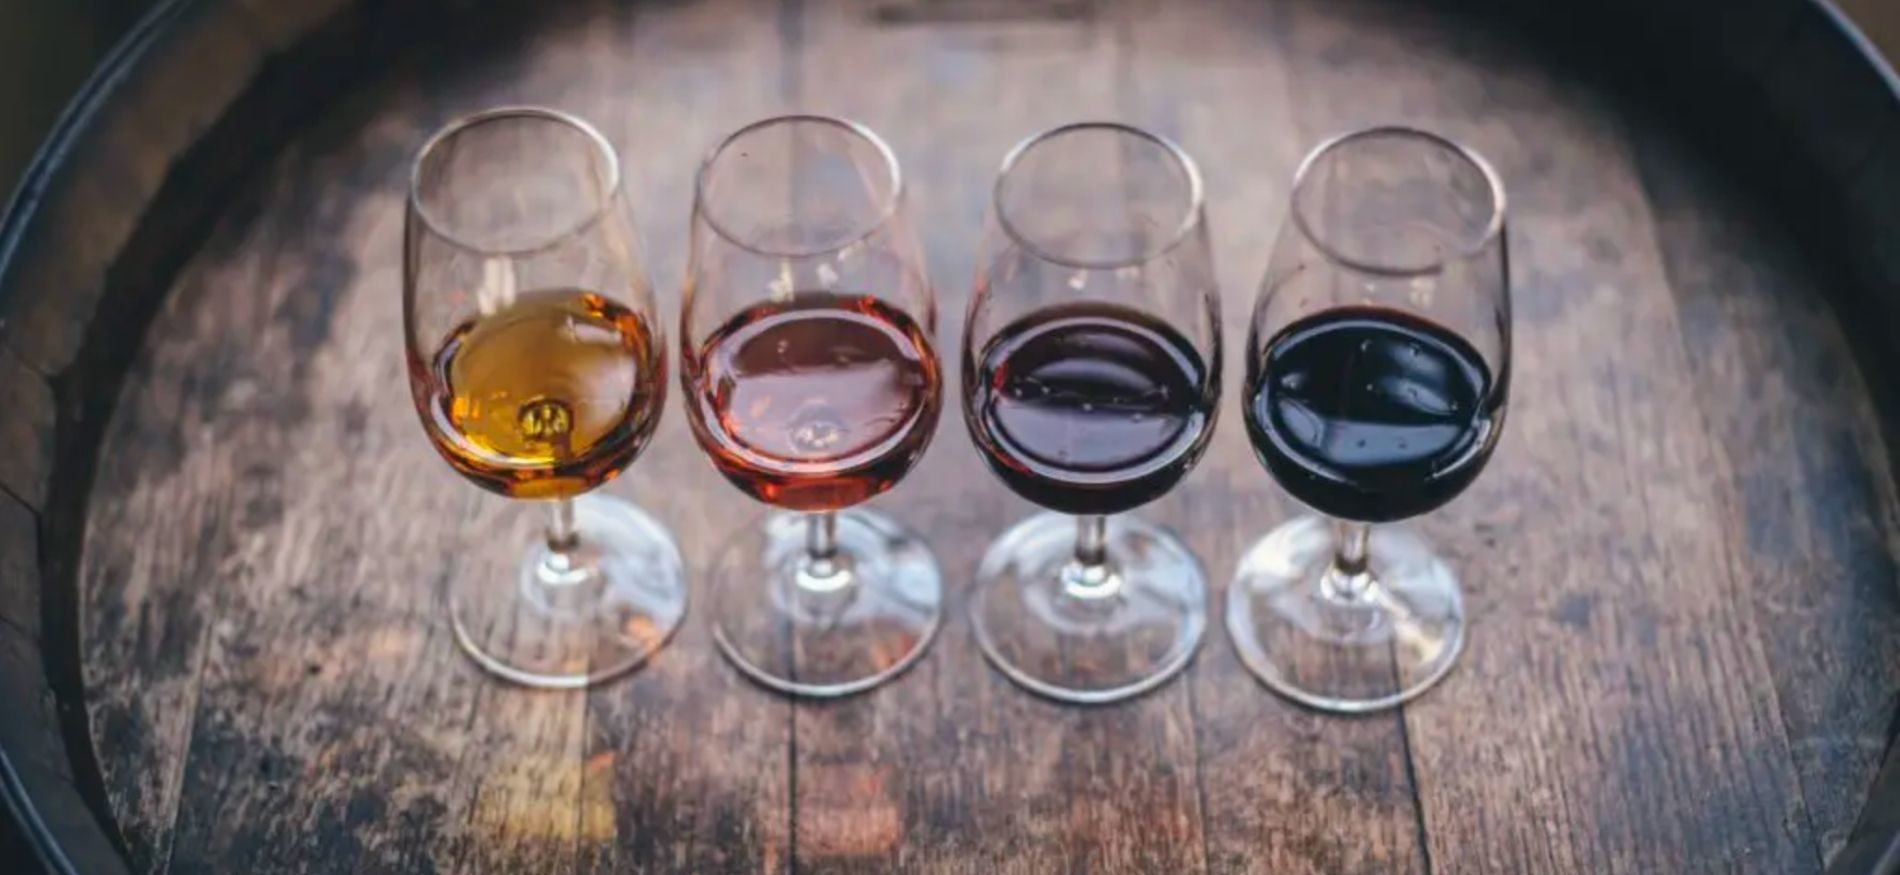 Four wine glasses on a wine barrel with different wines